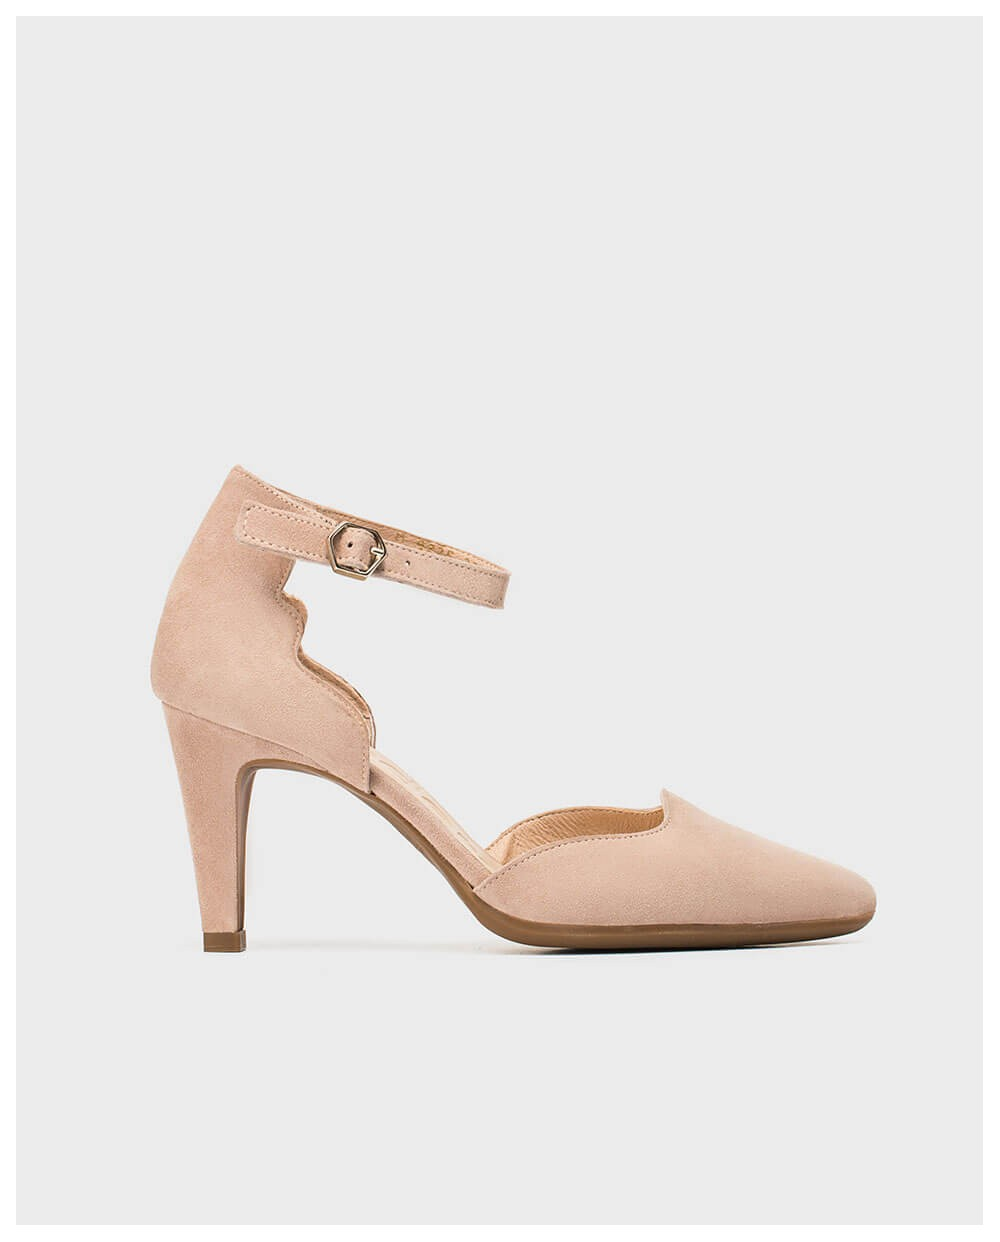 Shoe with wave detail heel